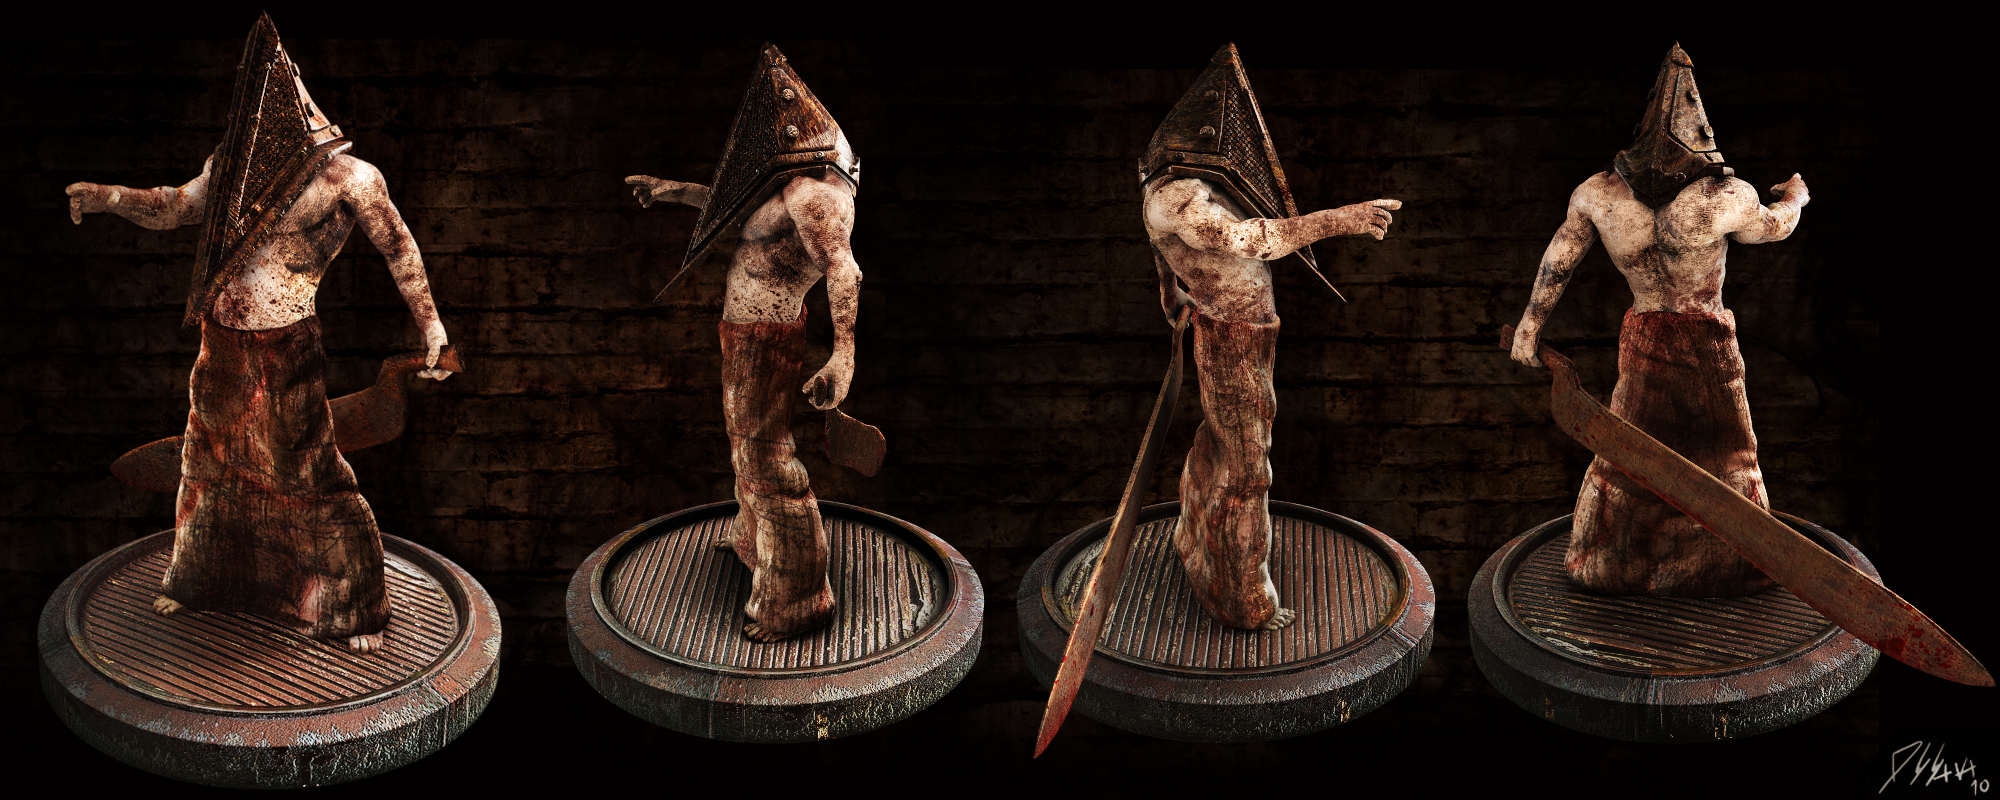 Pyramid Head 2 Silent Hill By Batatalion On Deviantart